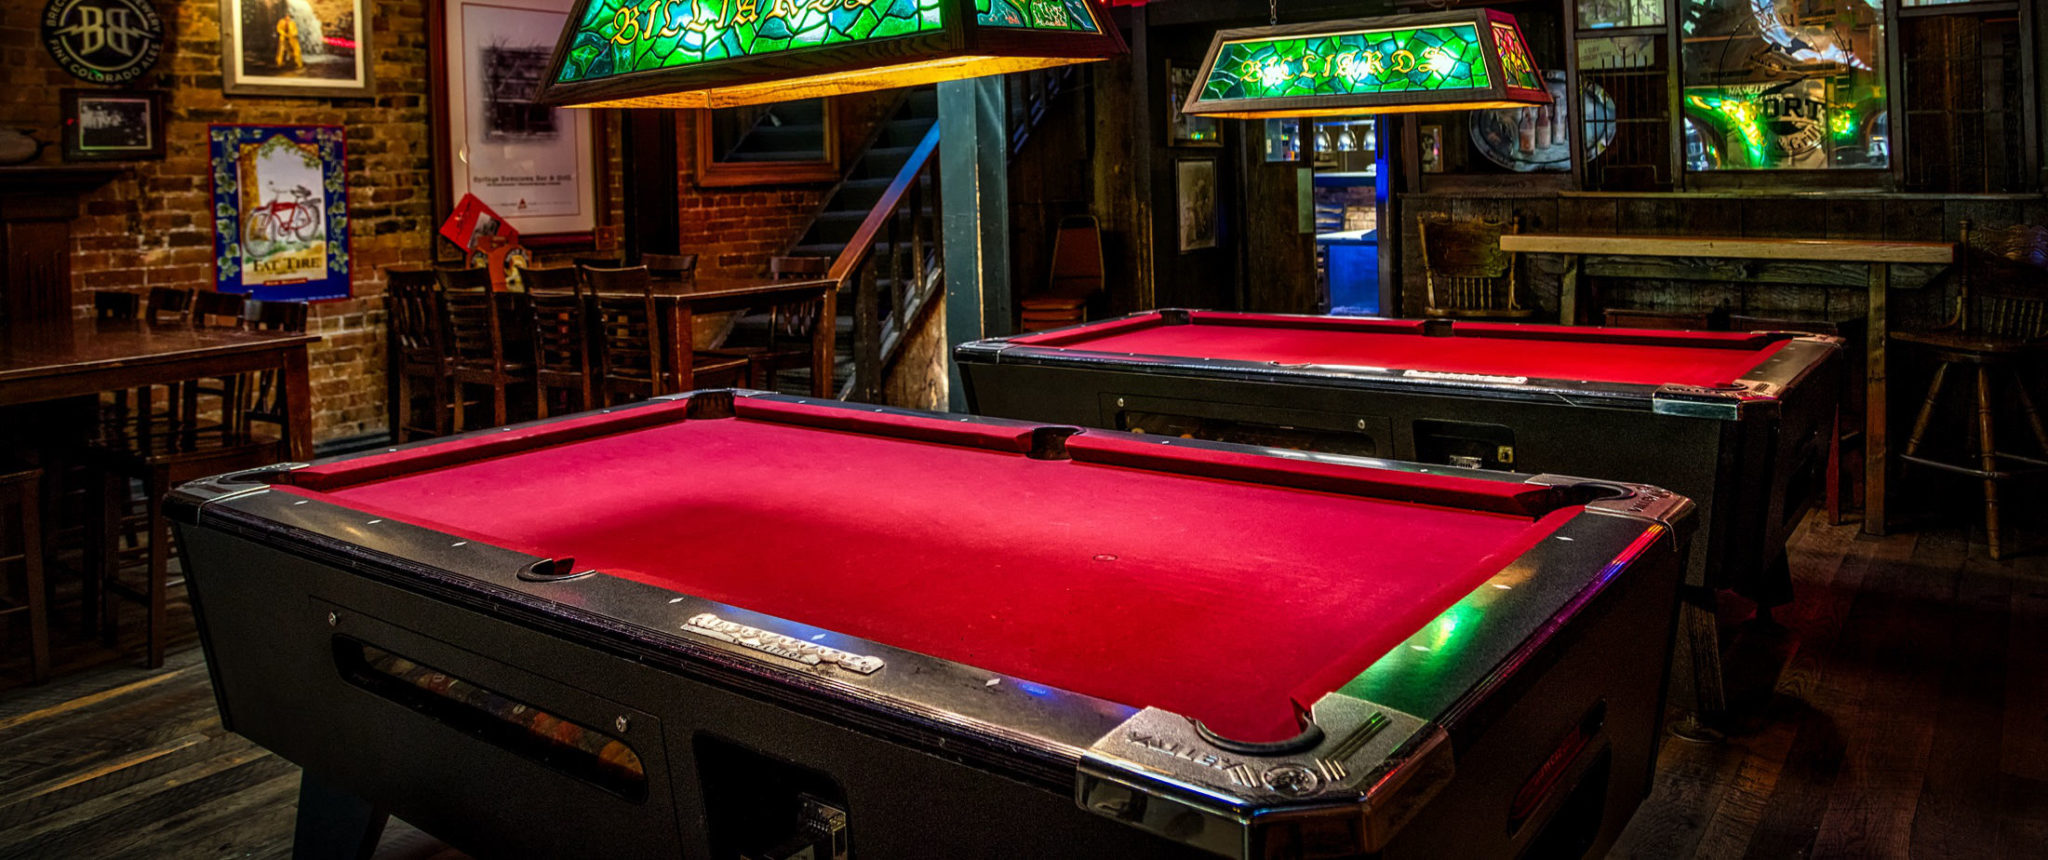 Revenue sharing oc games - Pool table supplies near me ...